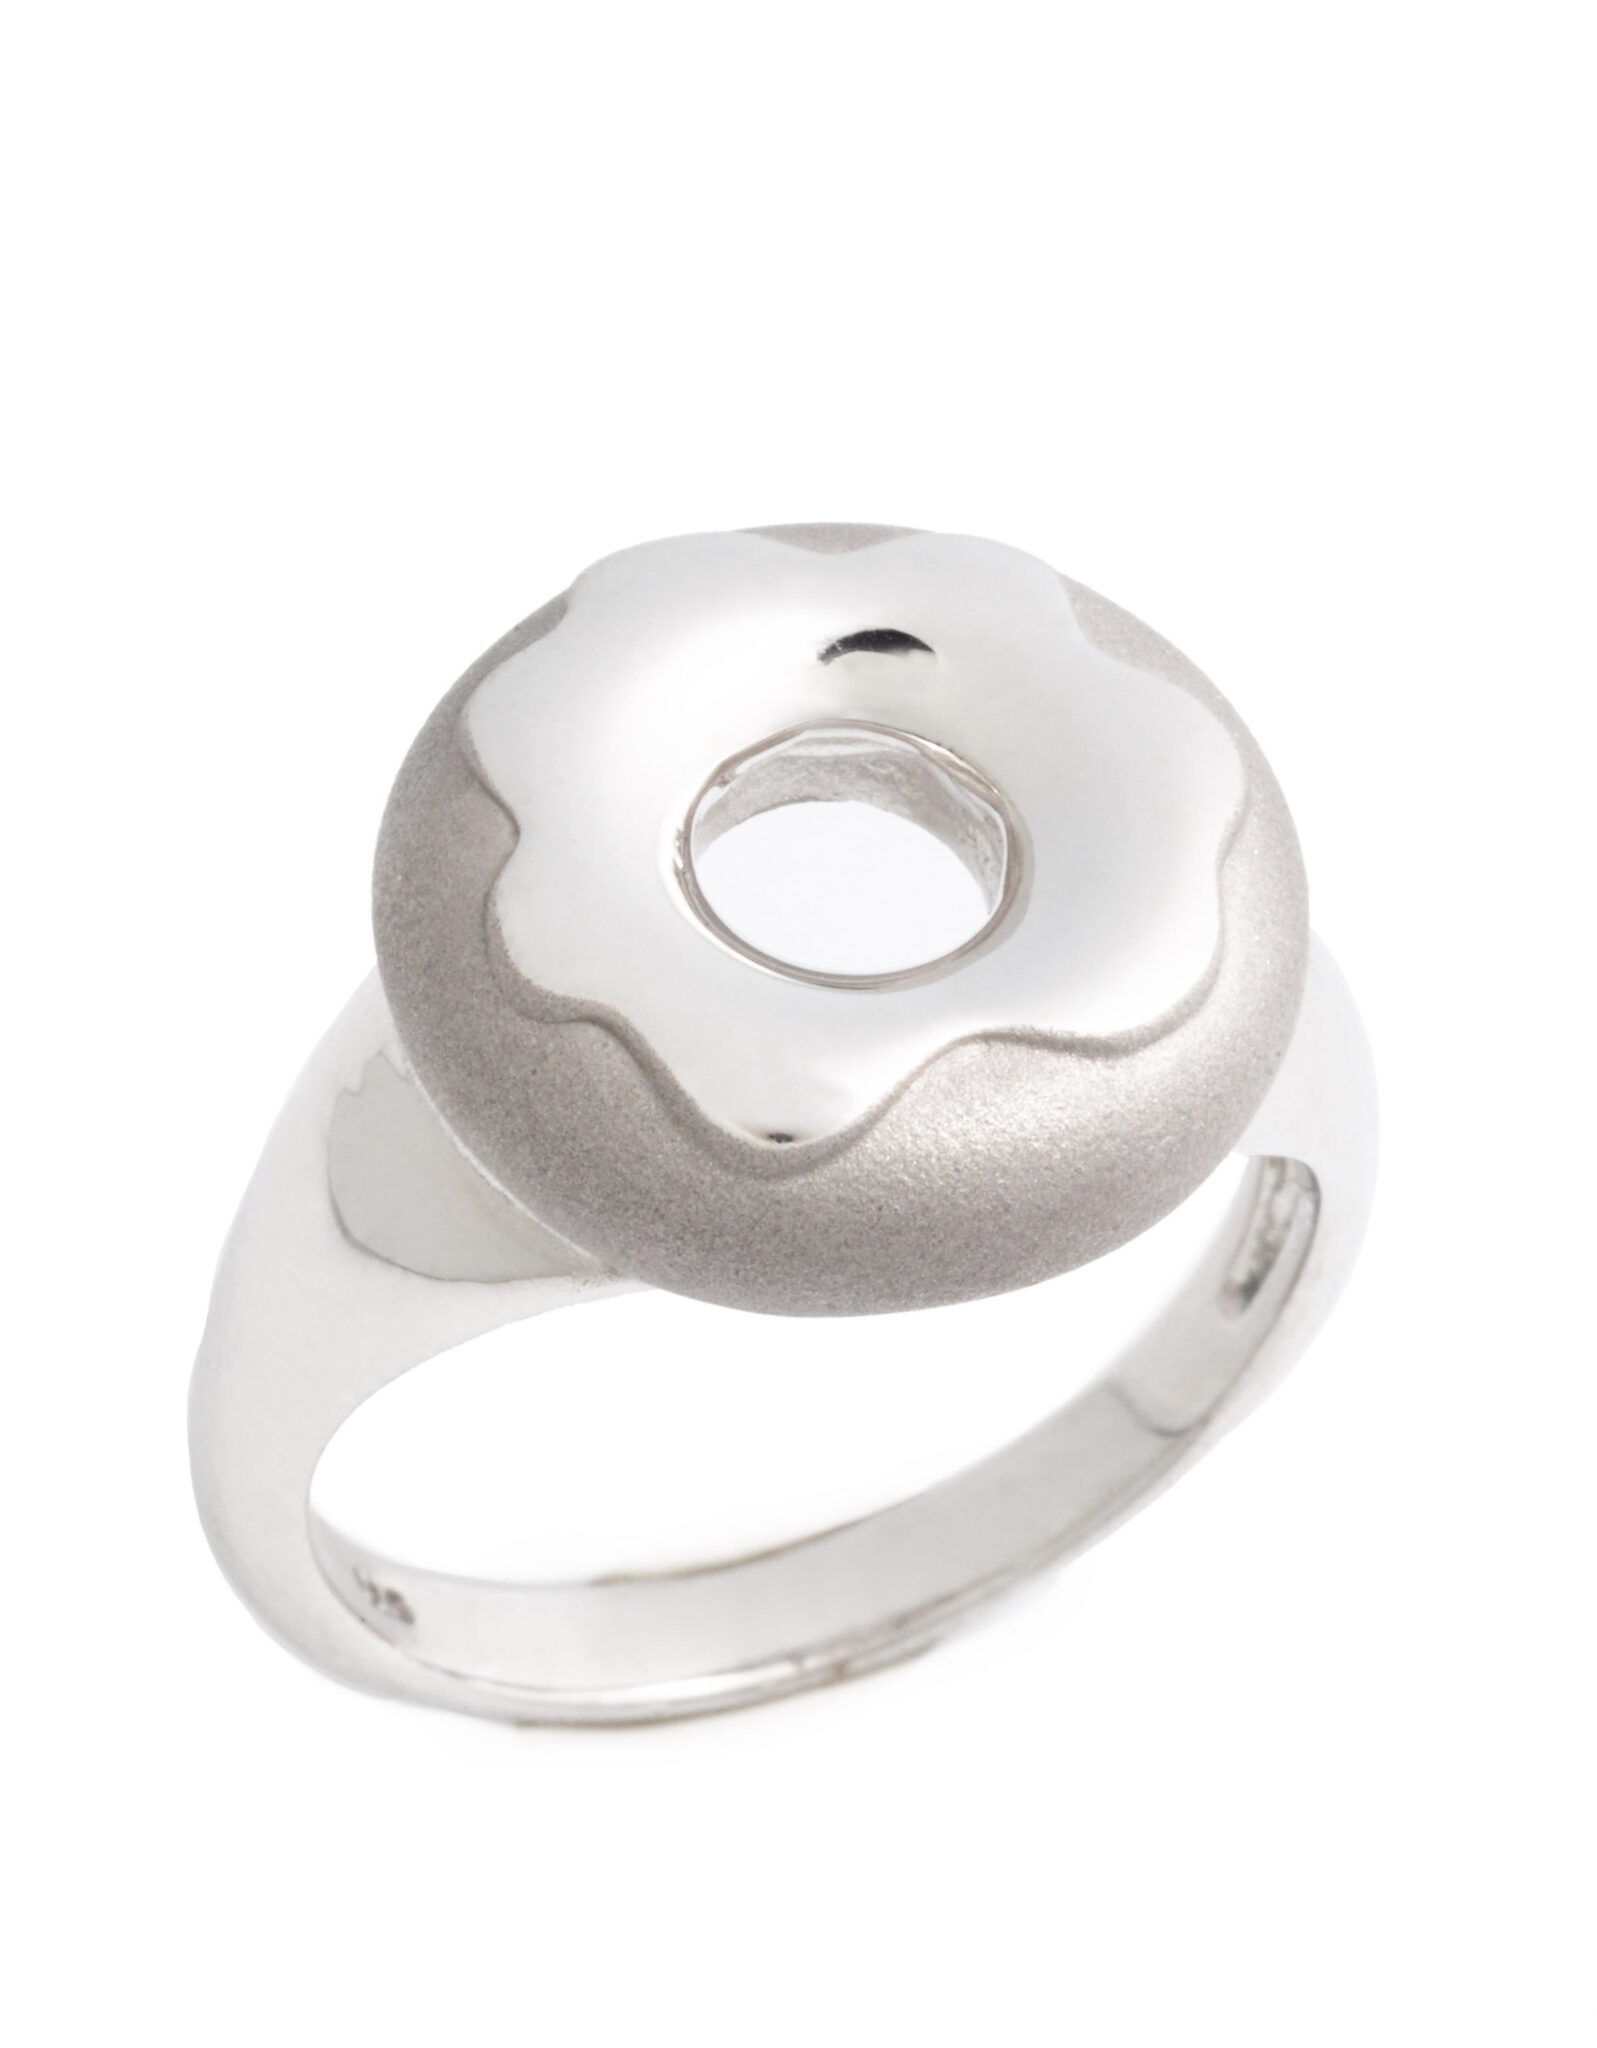 Glazed Doughnut Ring, Sterling Silver